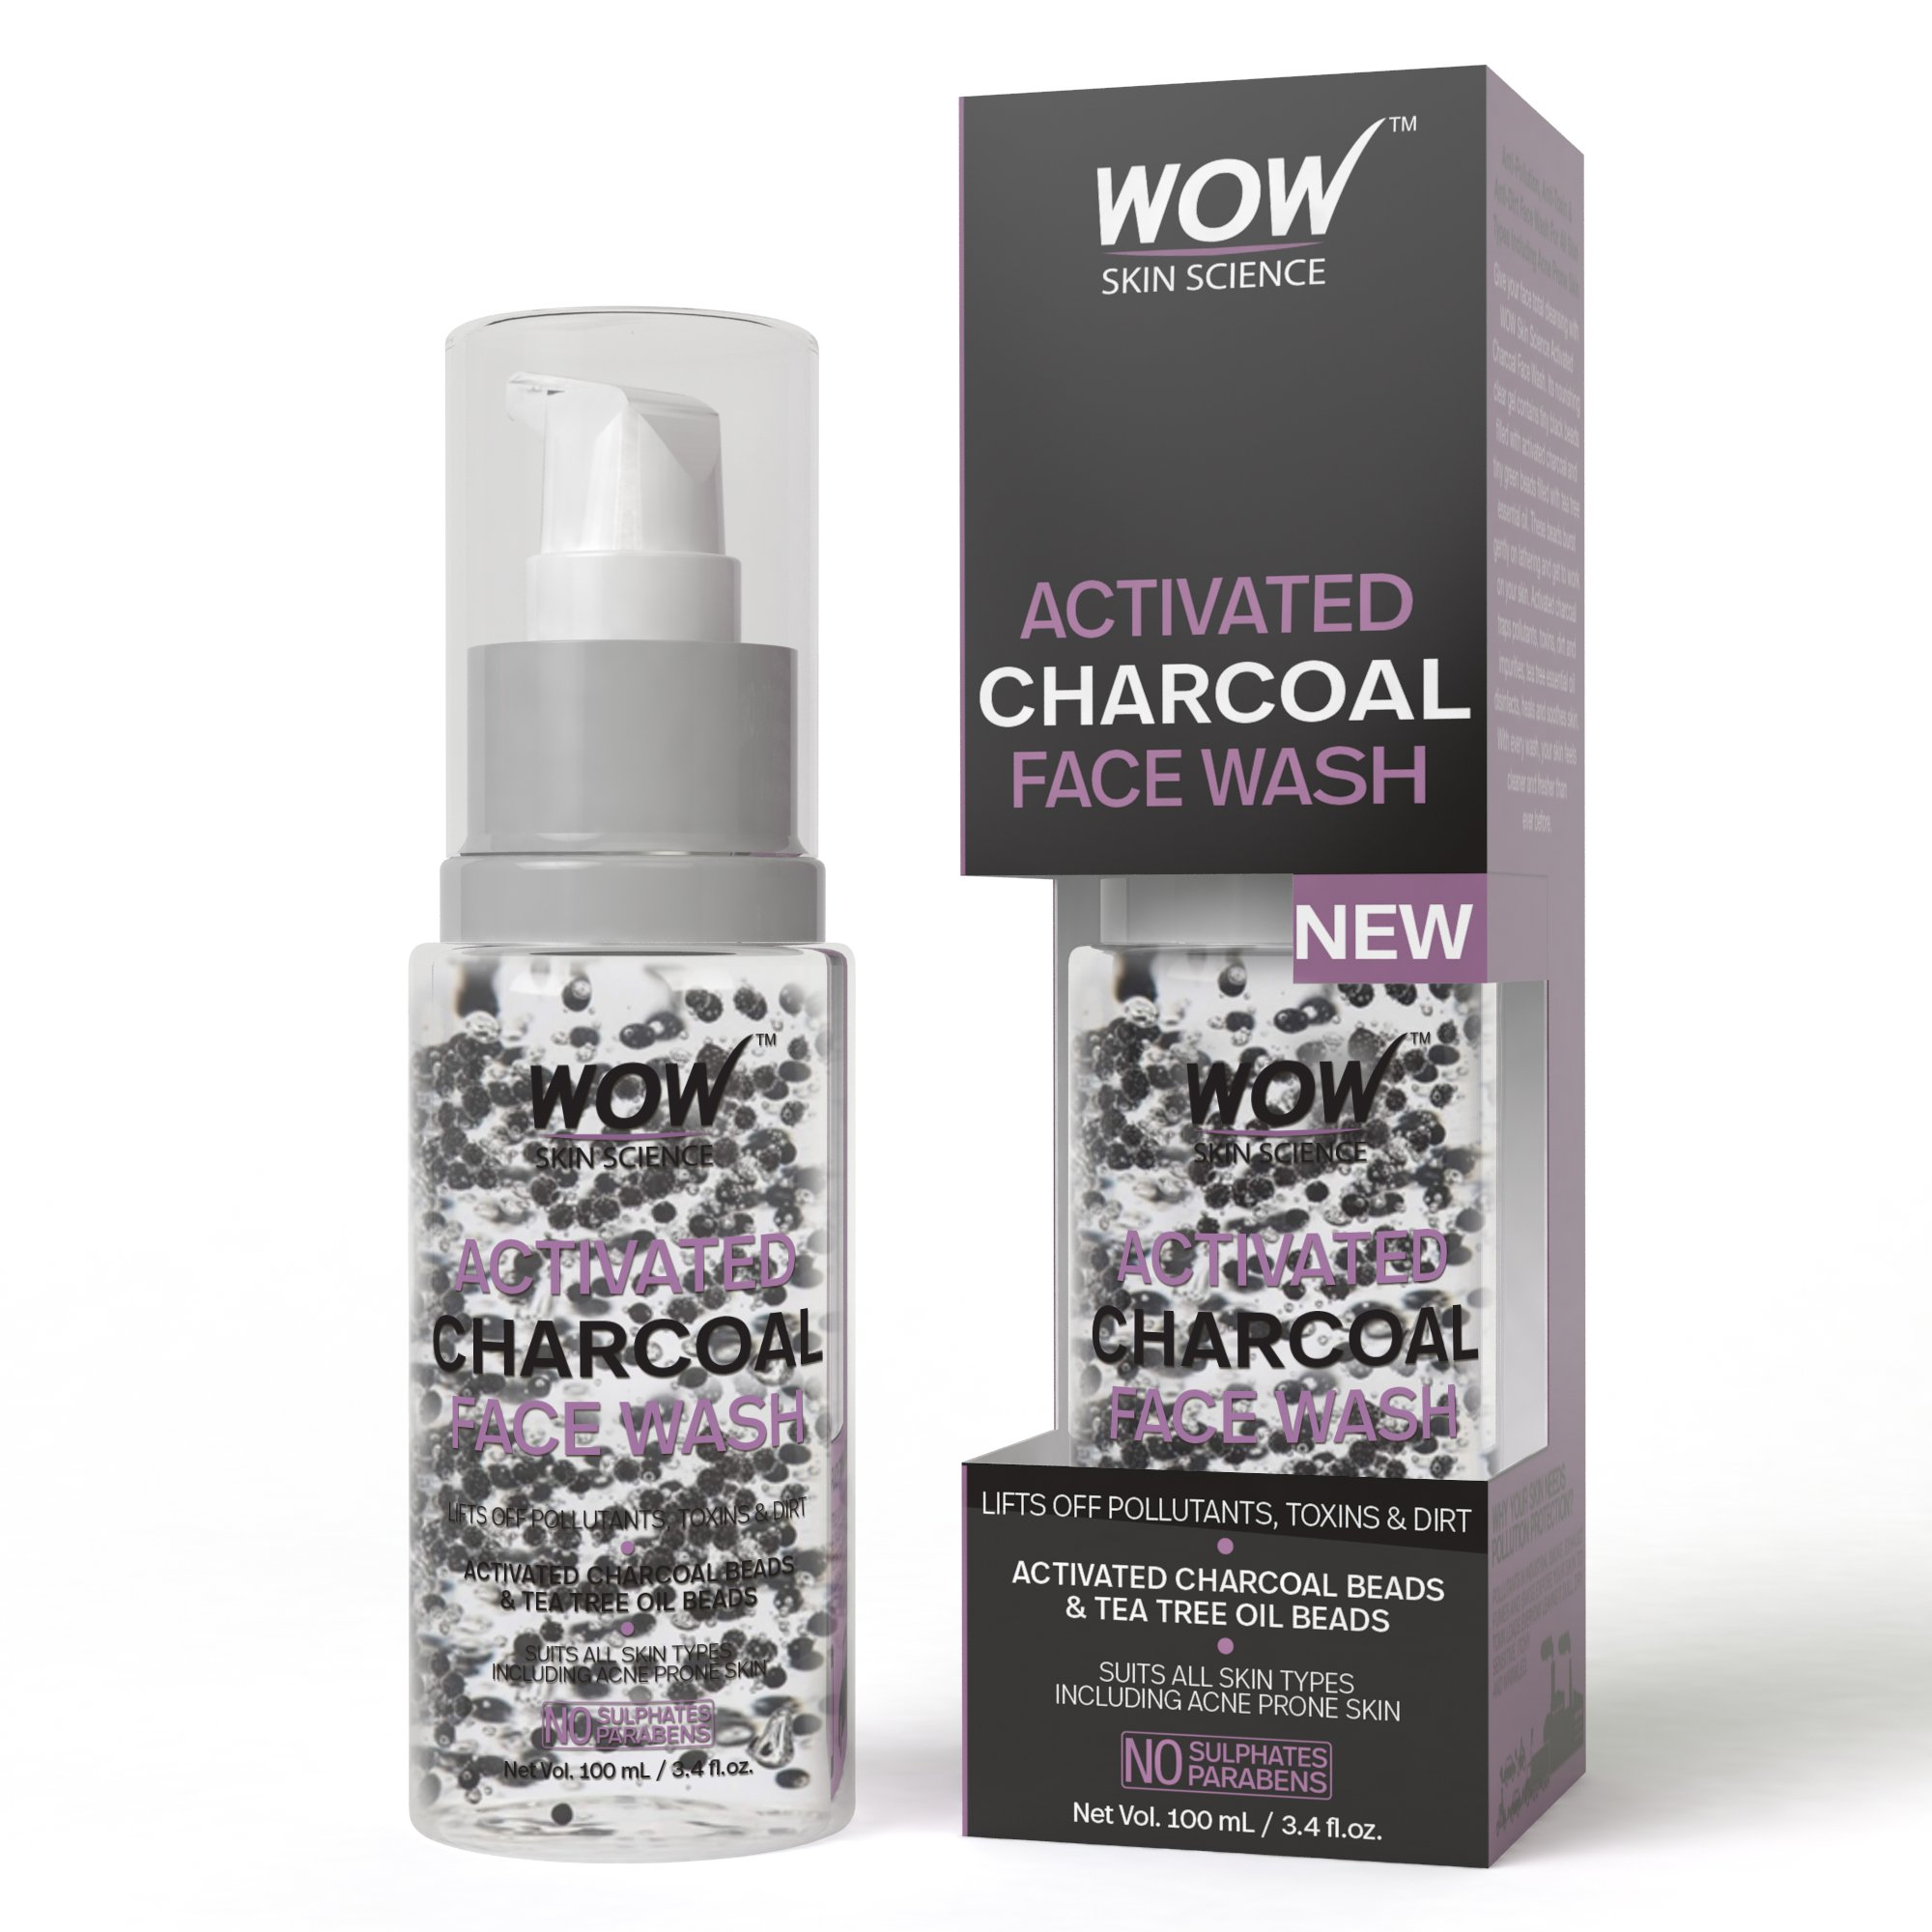 Wow Activated Charcoal Face Wash with Activated Charcoal Beads, 100ml product image